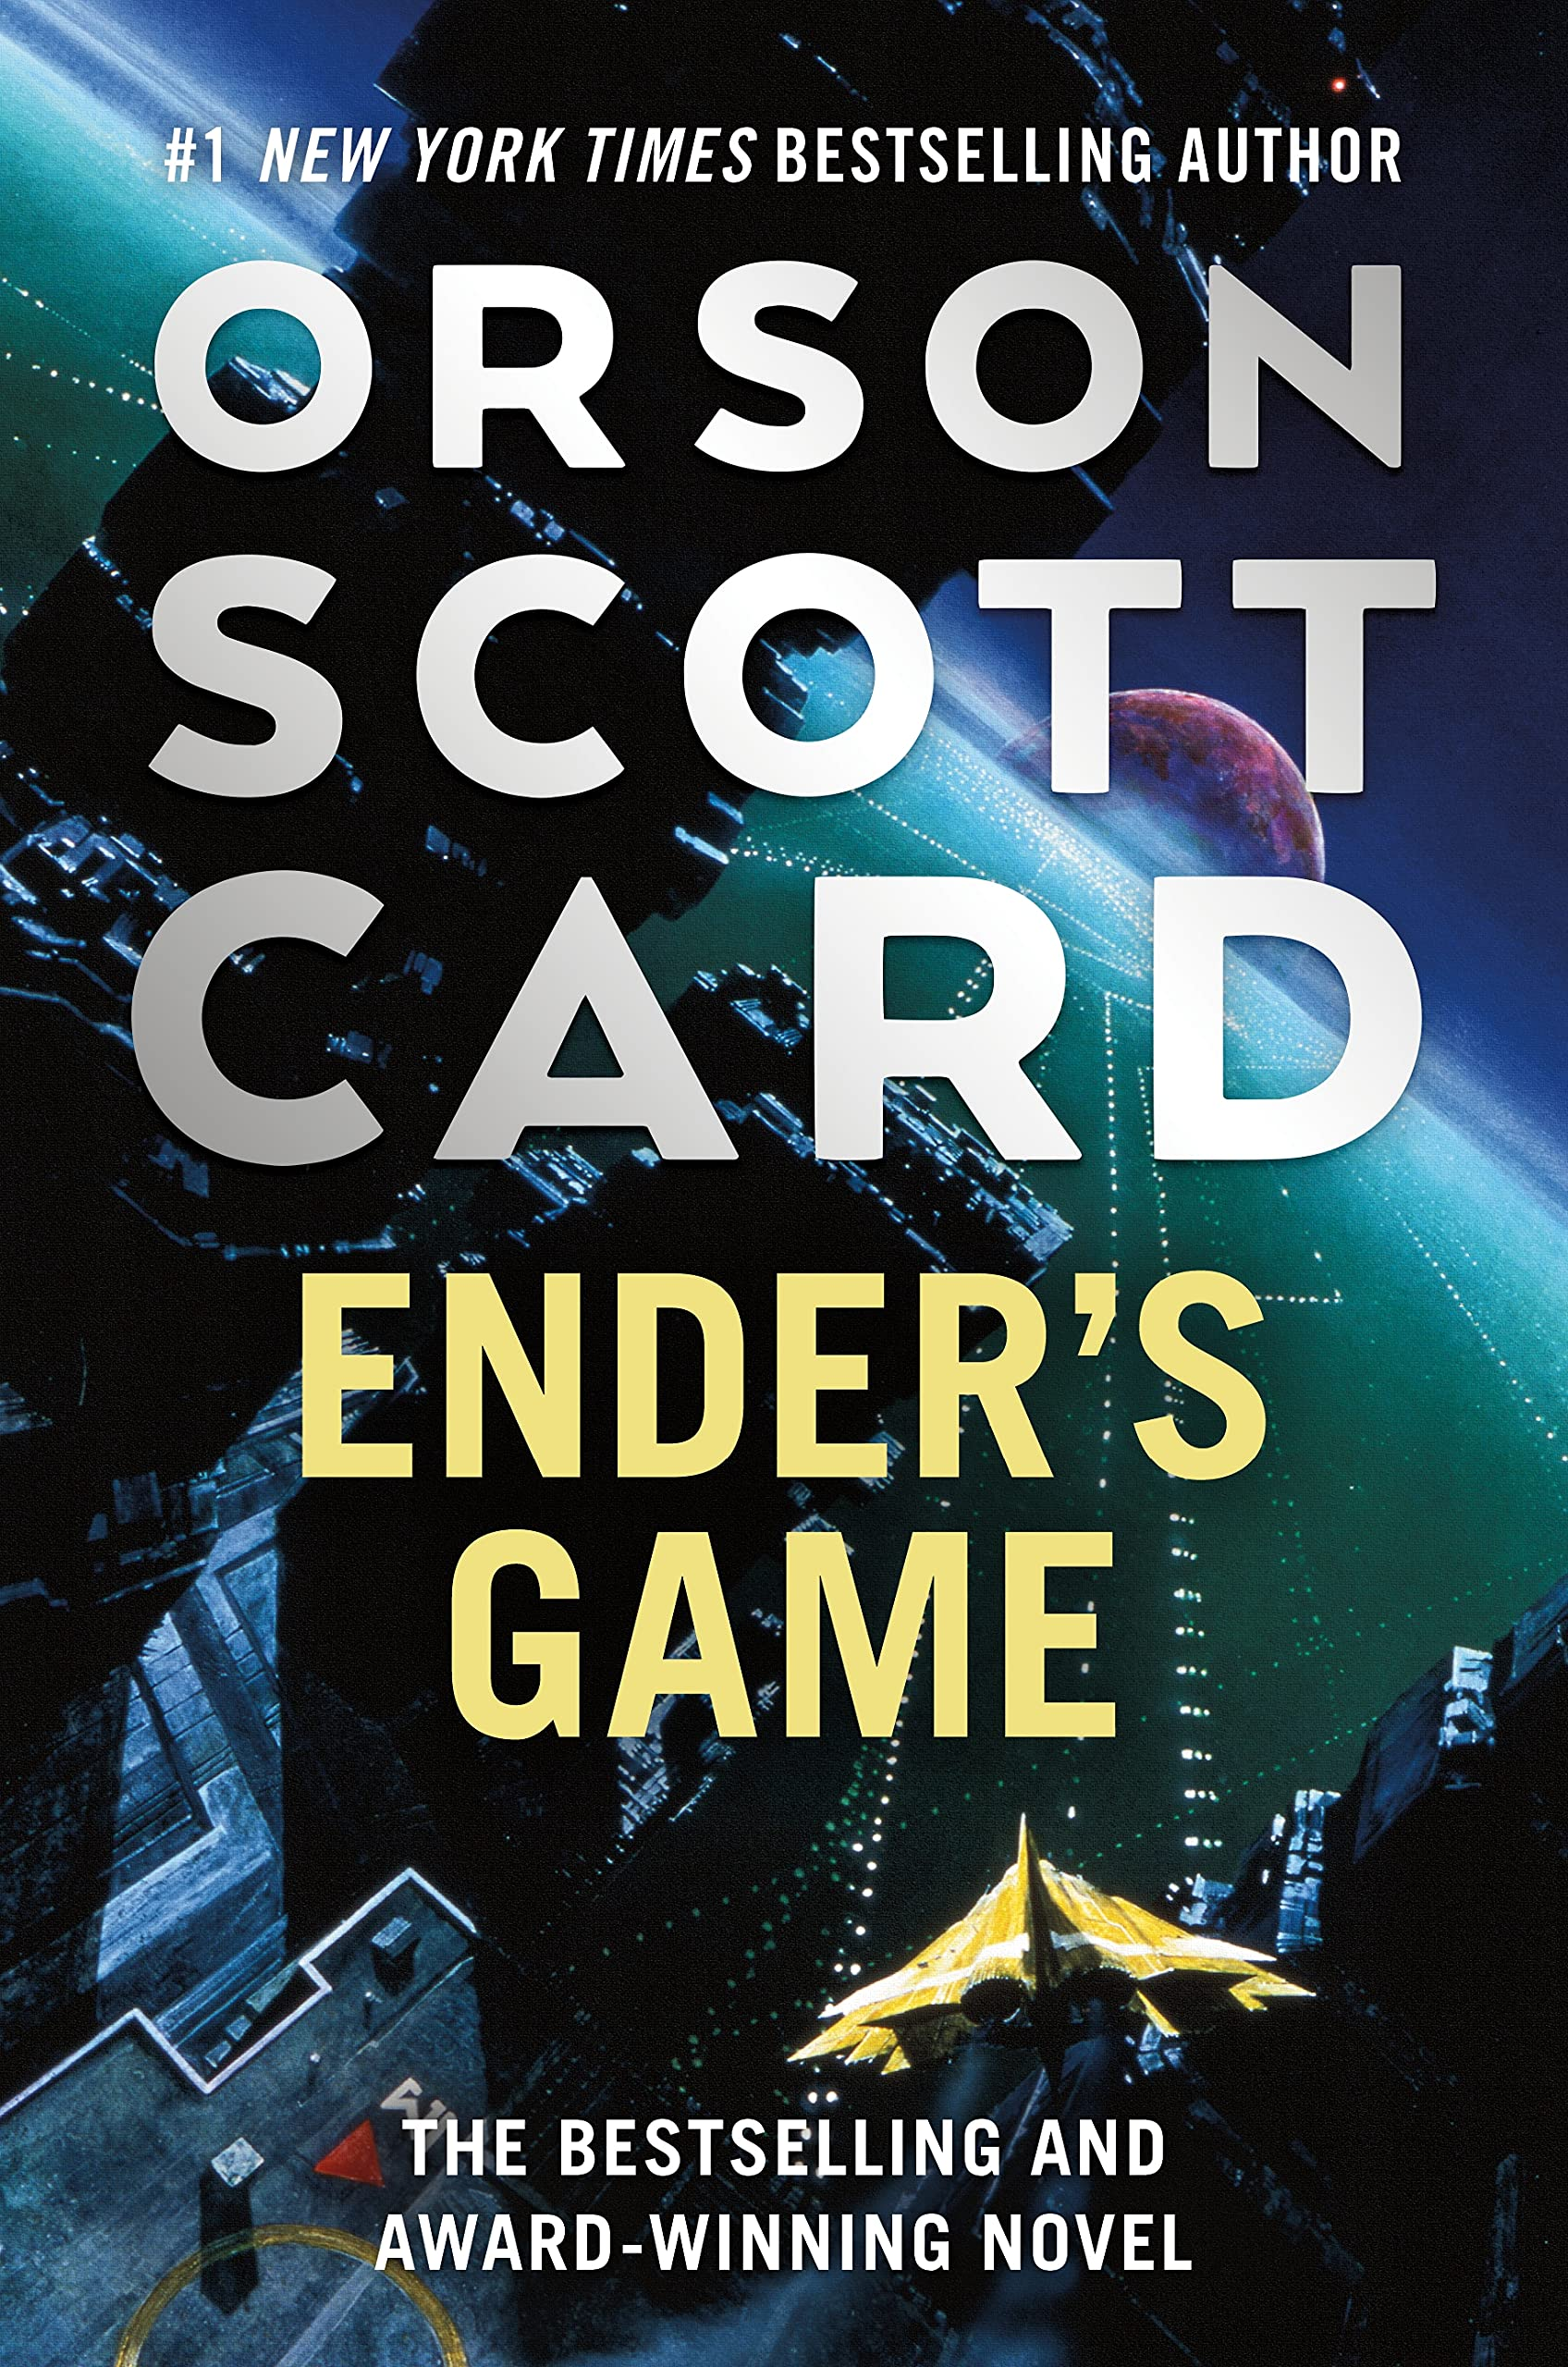 Image result for ender's game cover